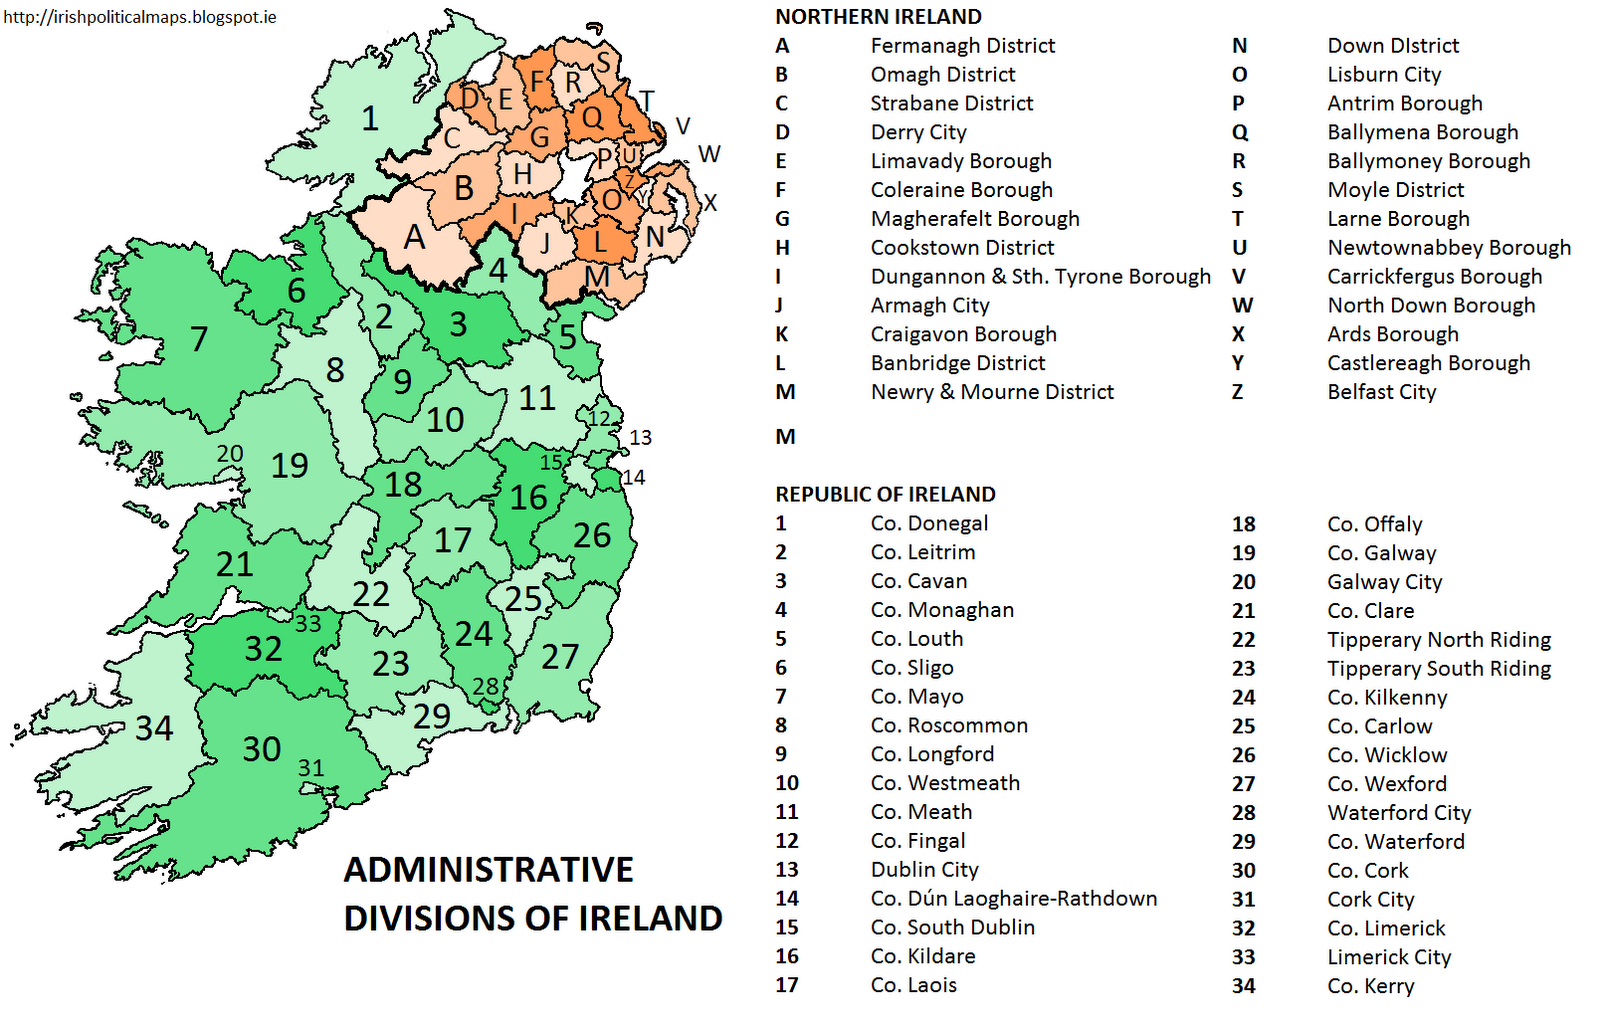 Irish Political Maps The Counties of Ireland